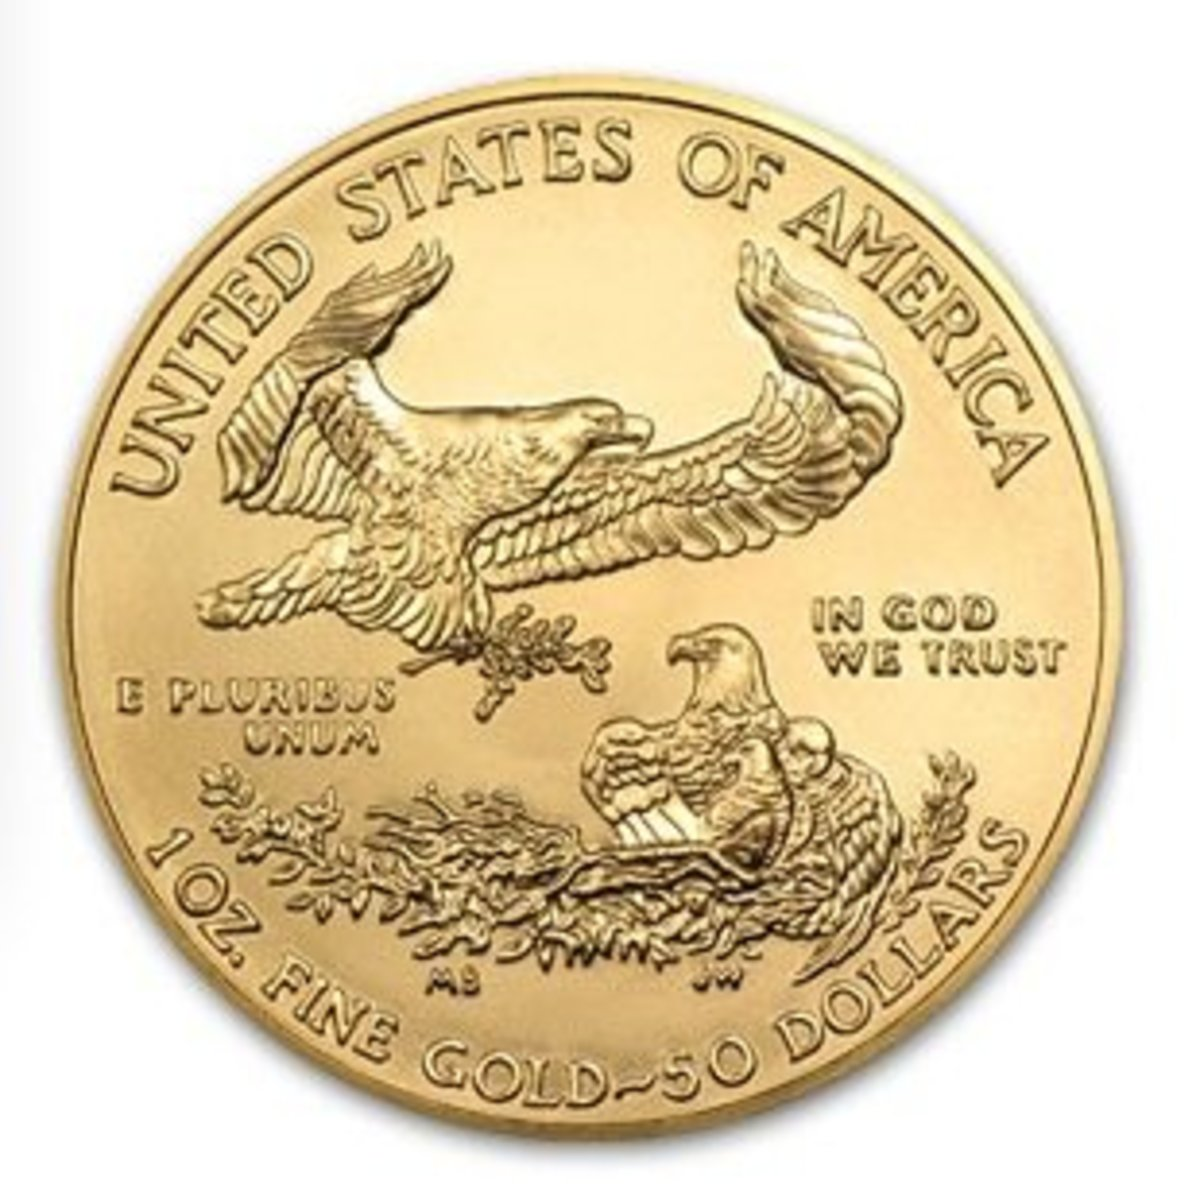 2014 American Gold Eagle Coin Gift – Back